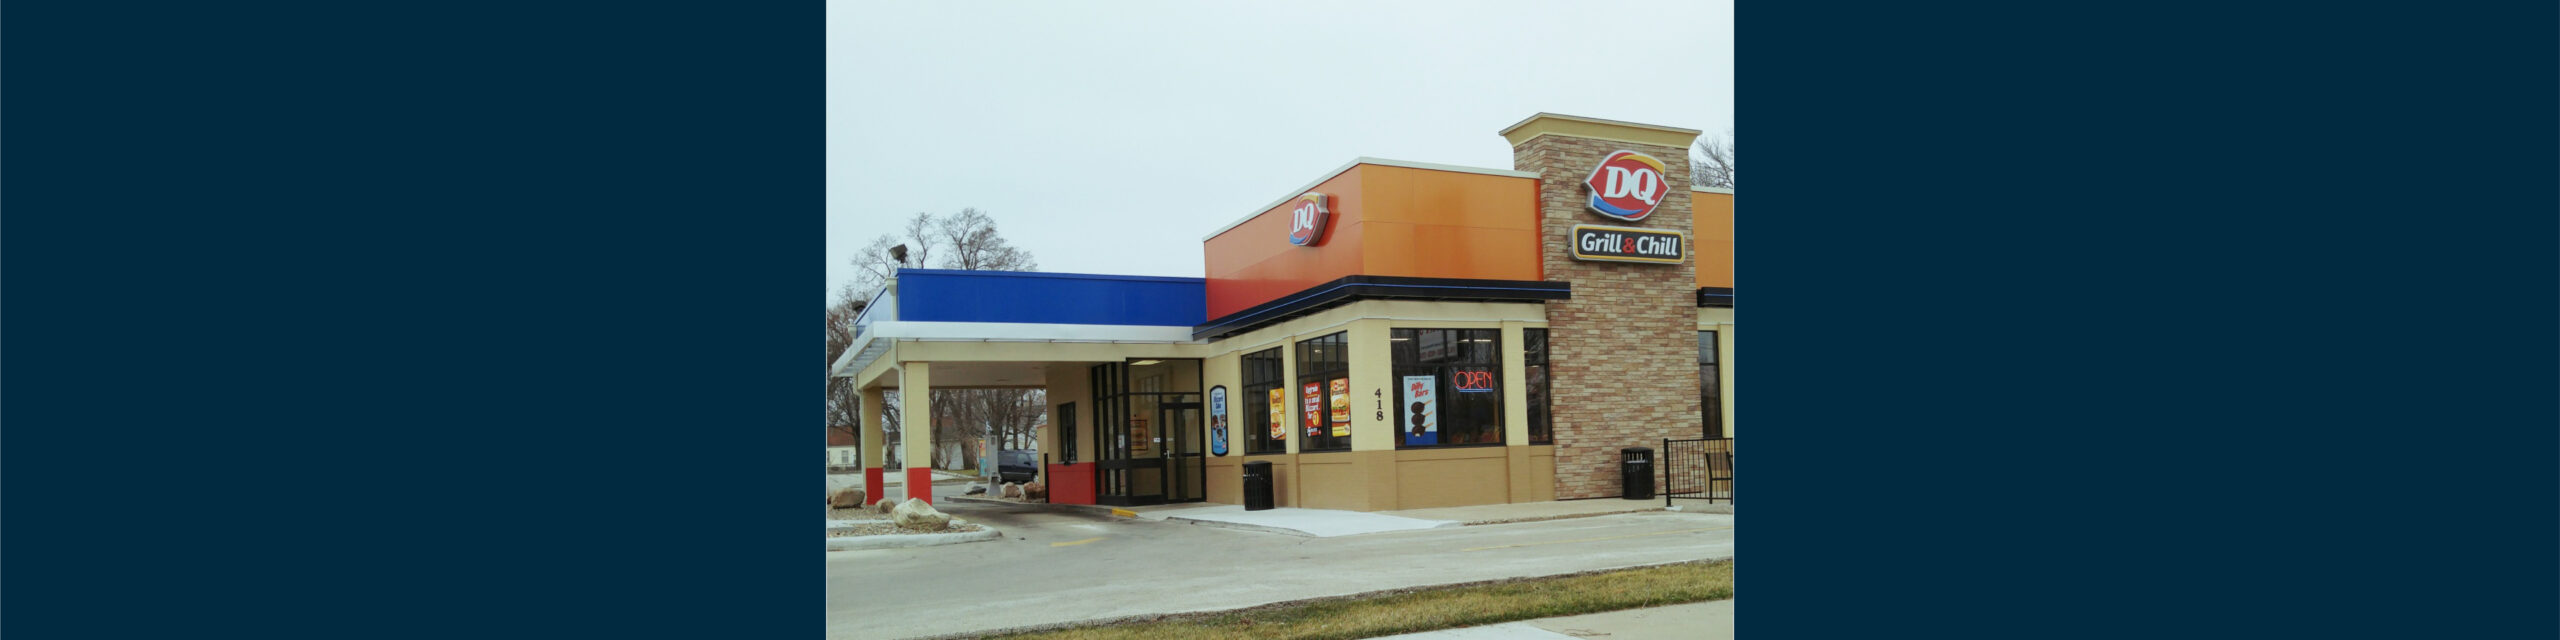 Ankeny, IA Fourteen Foods DQ Restaurant